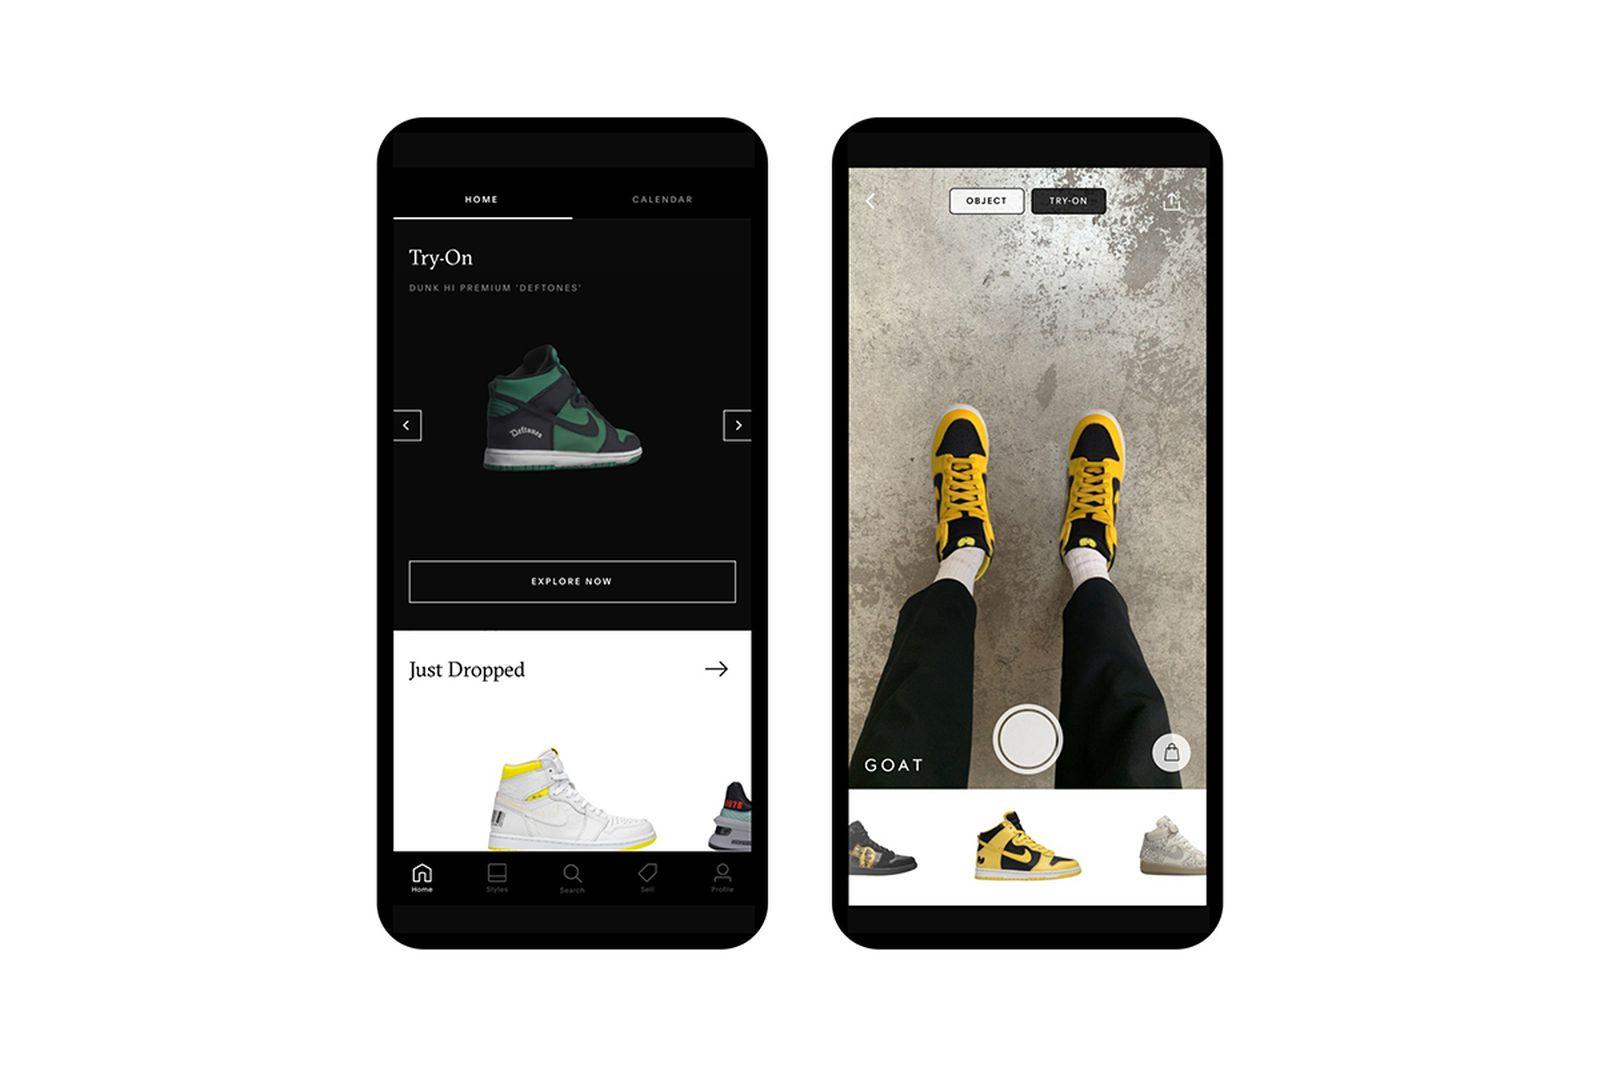 digital-sneakers-you-cant-wear-02